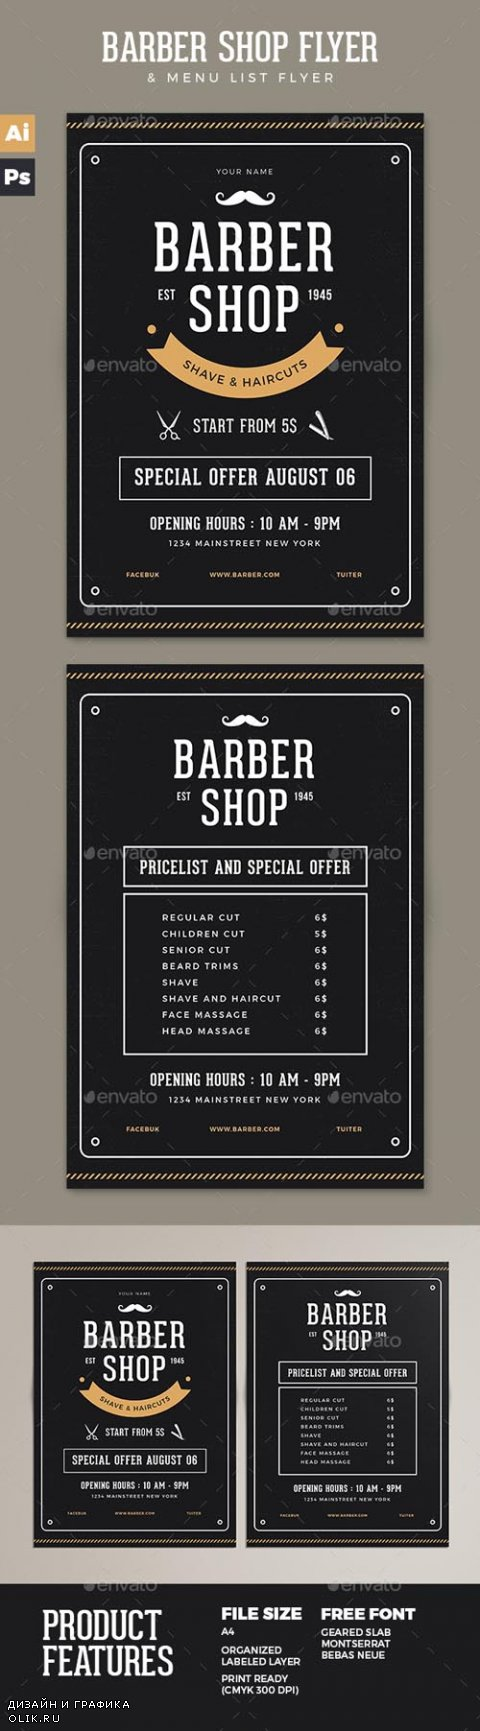 Barber Shop Flyer 17258298